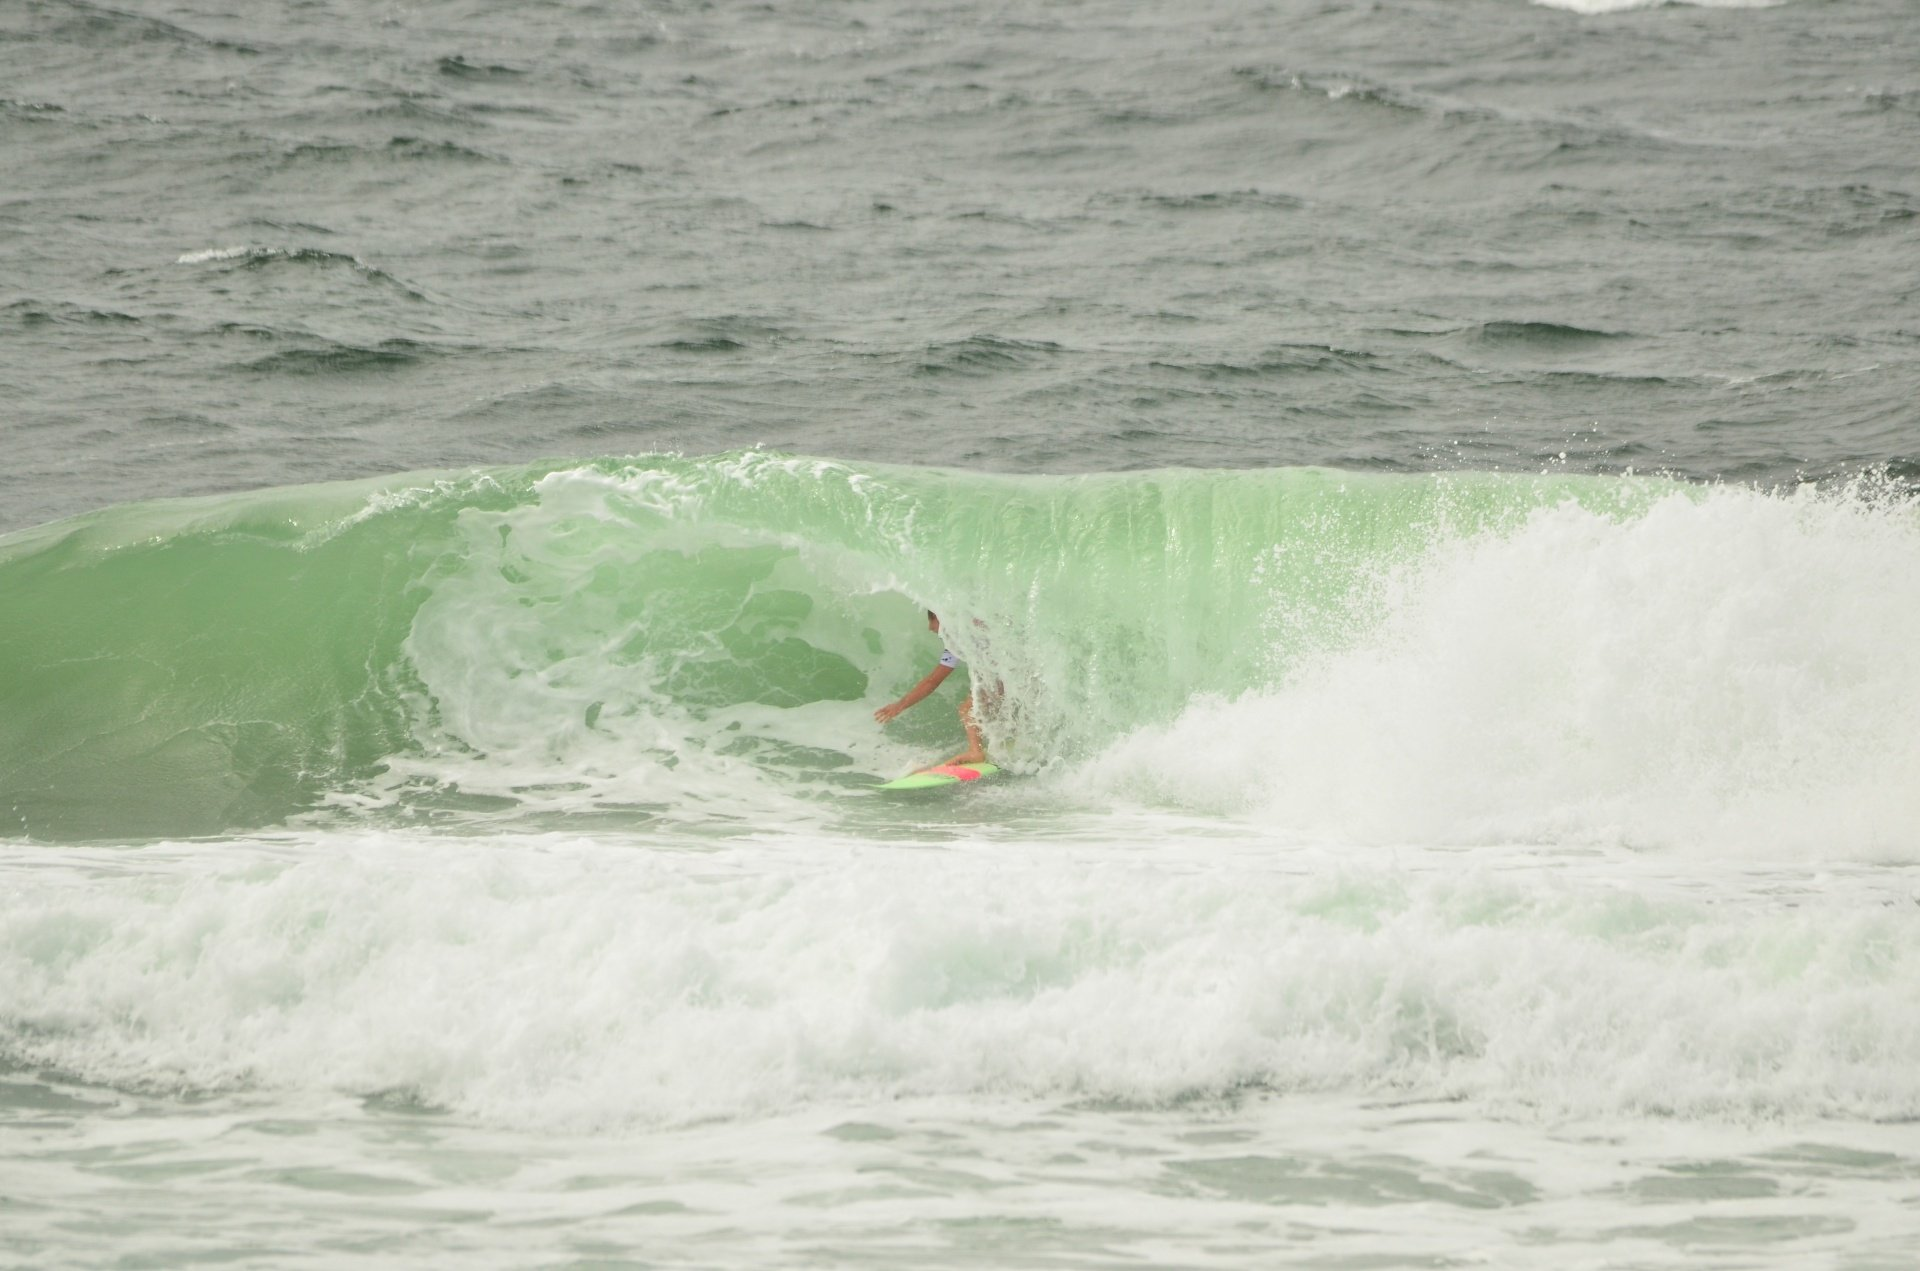 Bertie's photo of Kirra